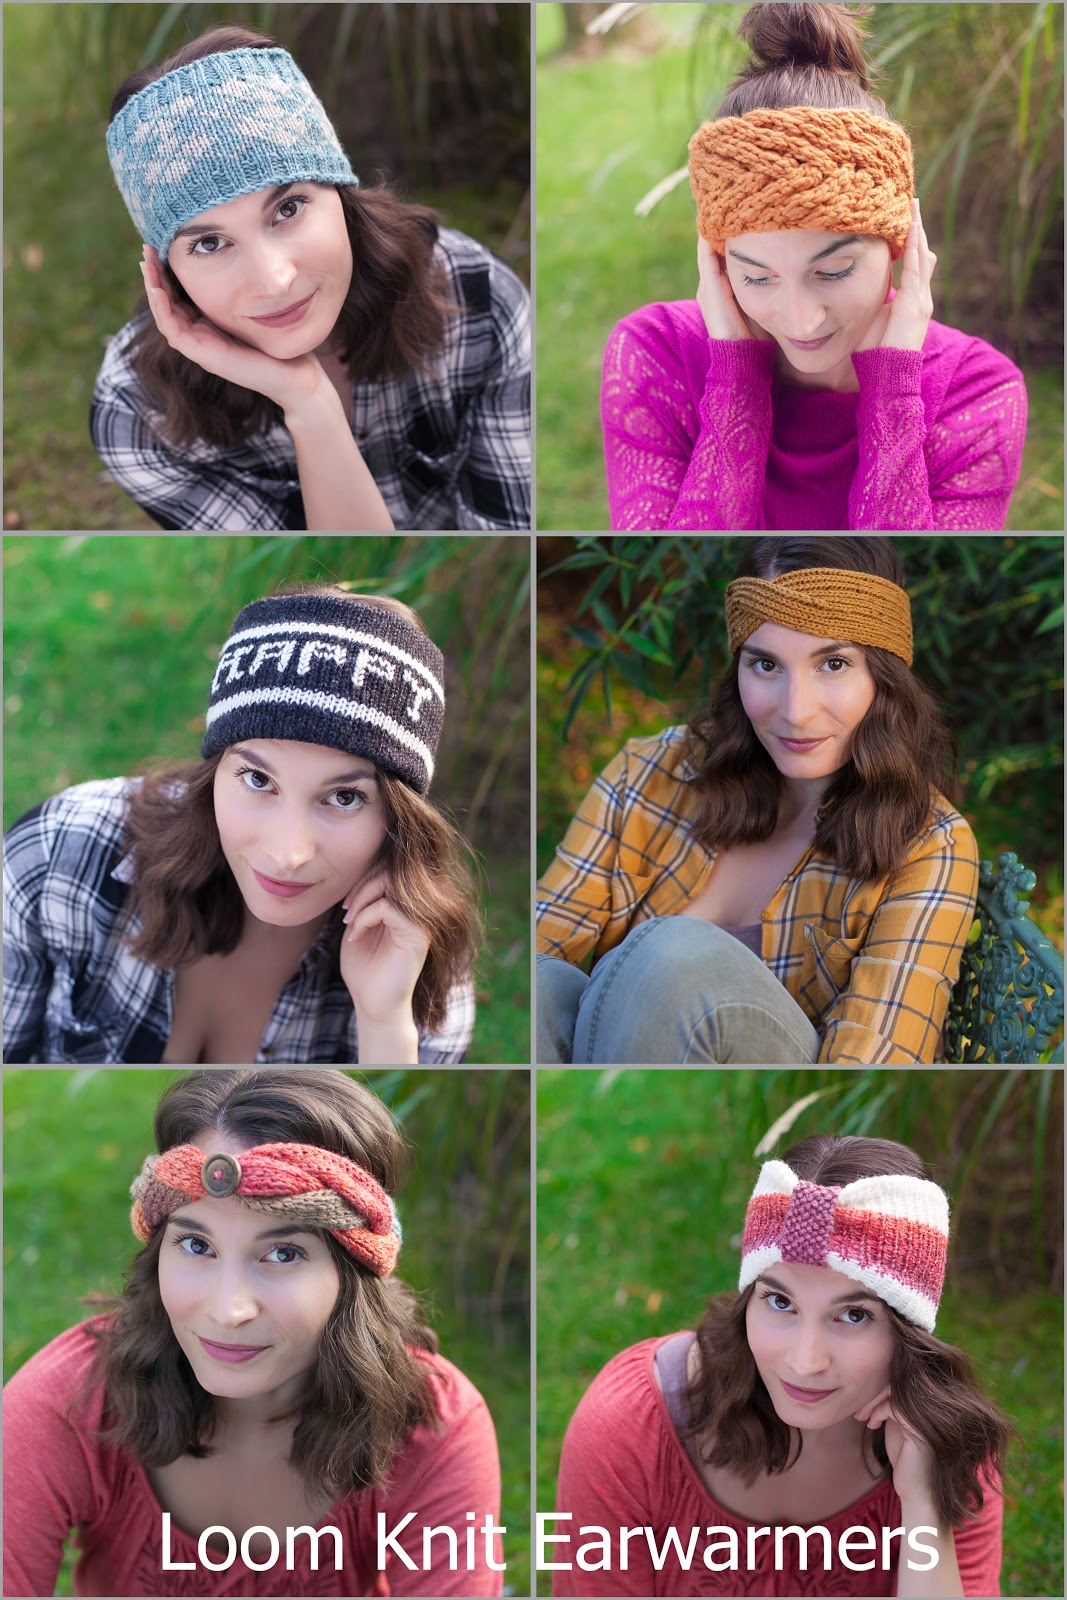 loom knit earwarmer, headband, loom knitting patterns, patterns